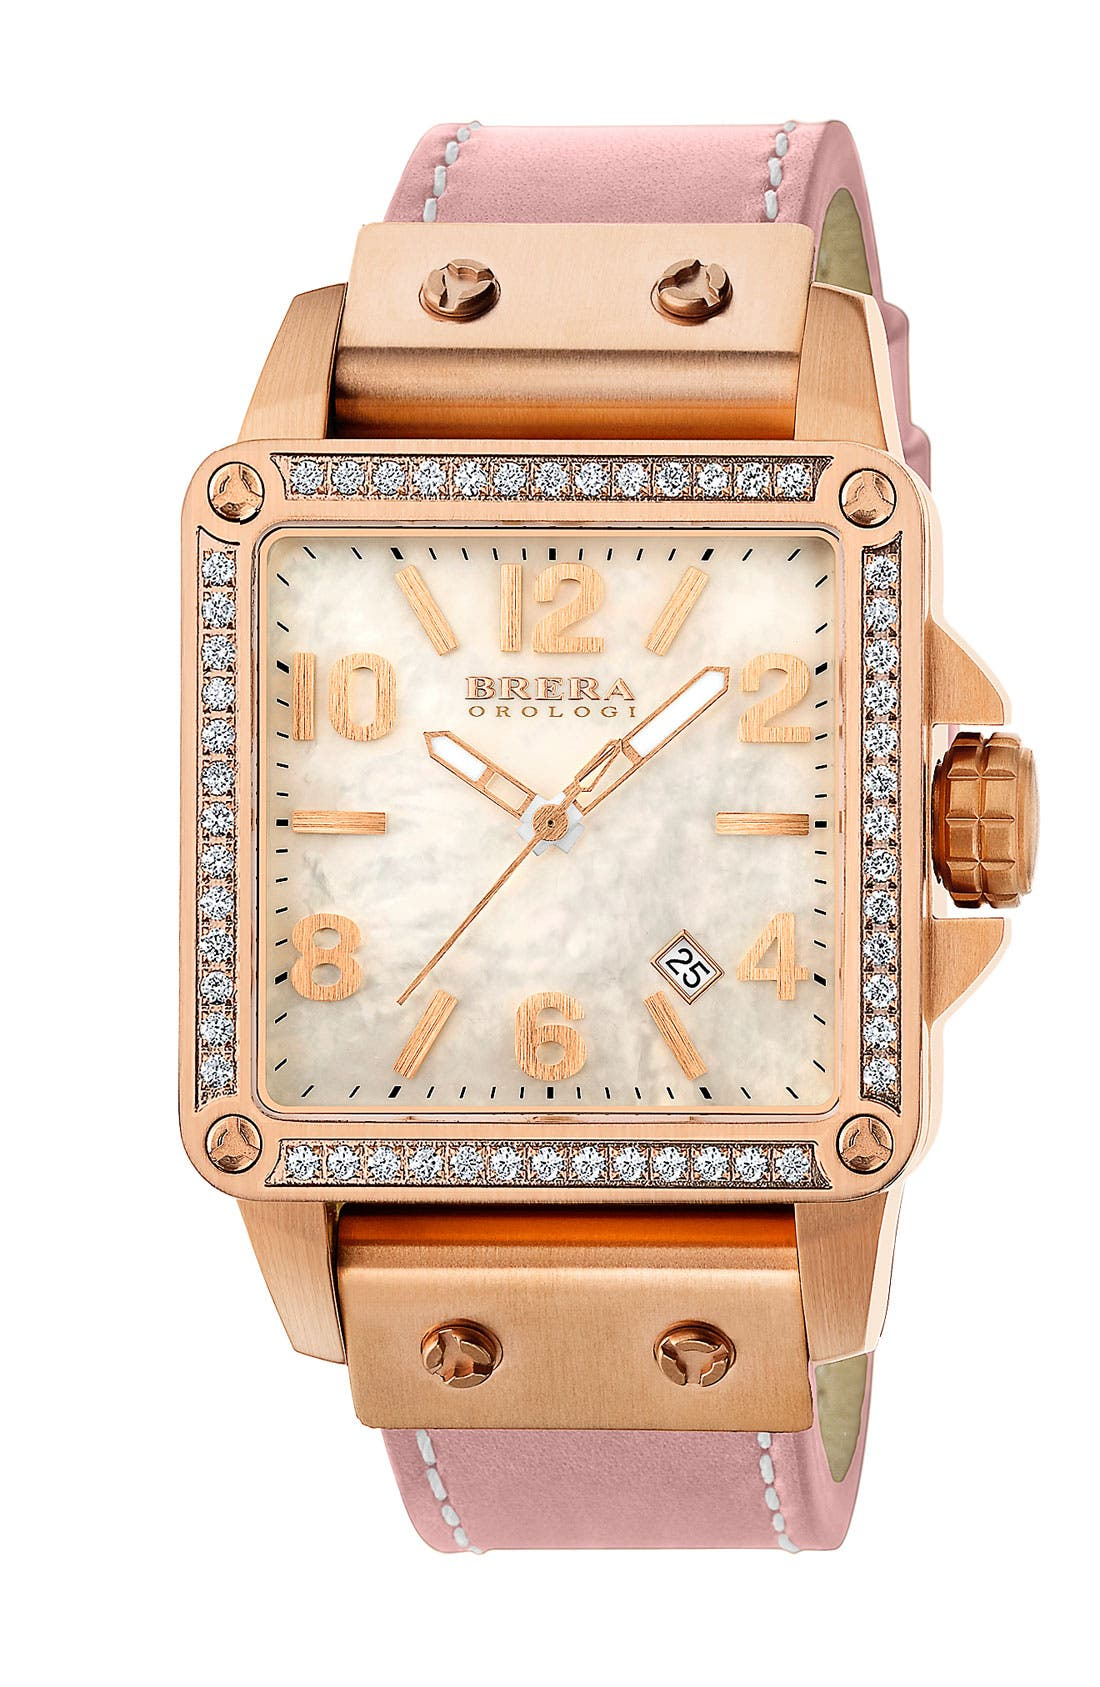 Main Image - STELLA SQUARE DIAMOND WATCH W/ LEATHER STRAP